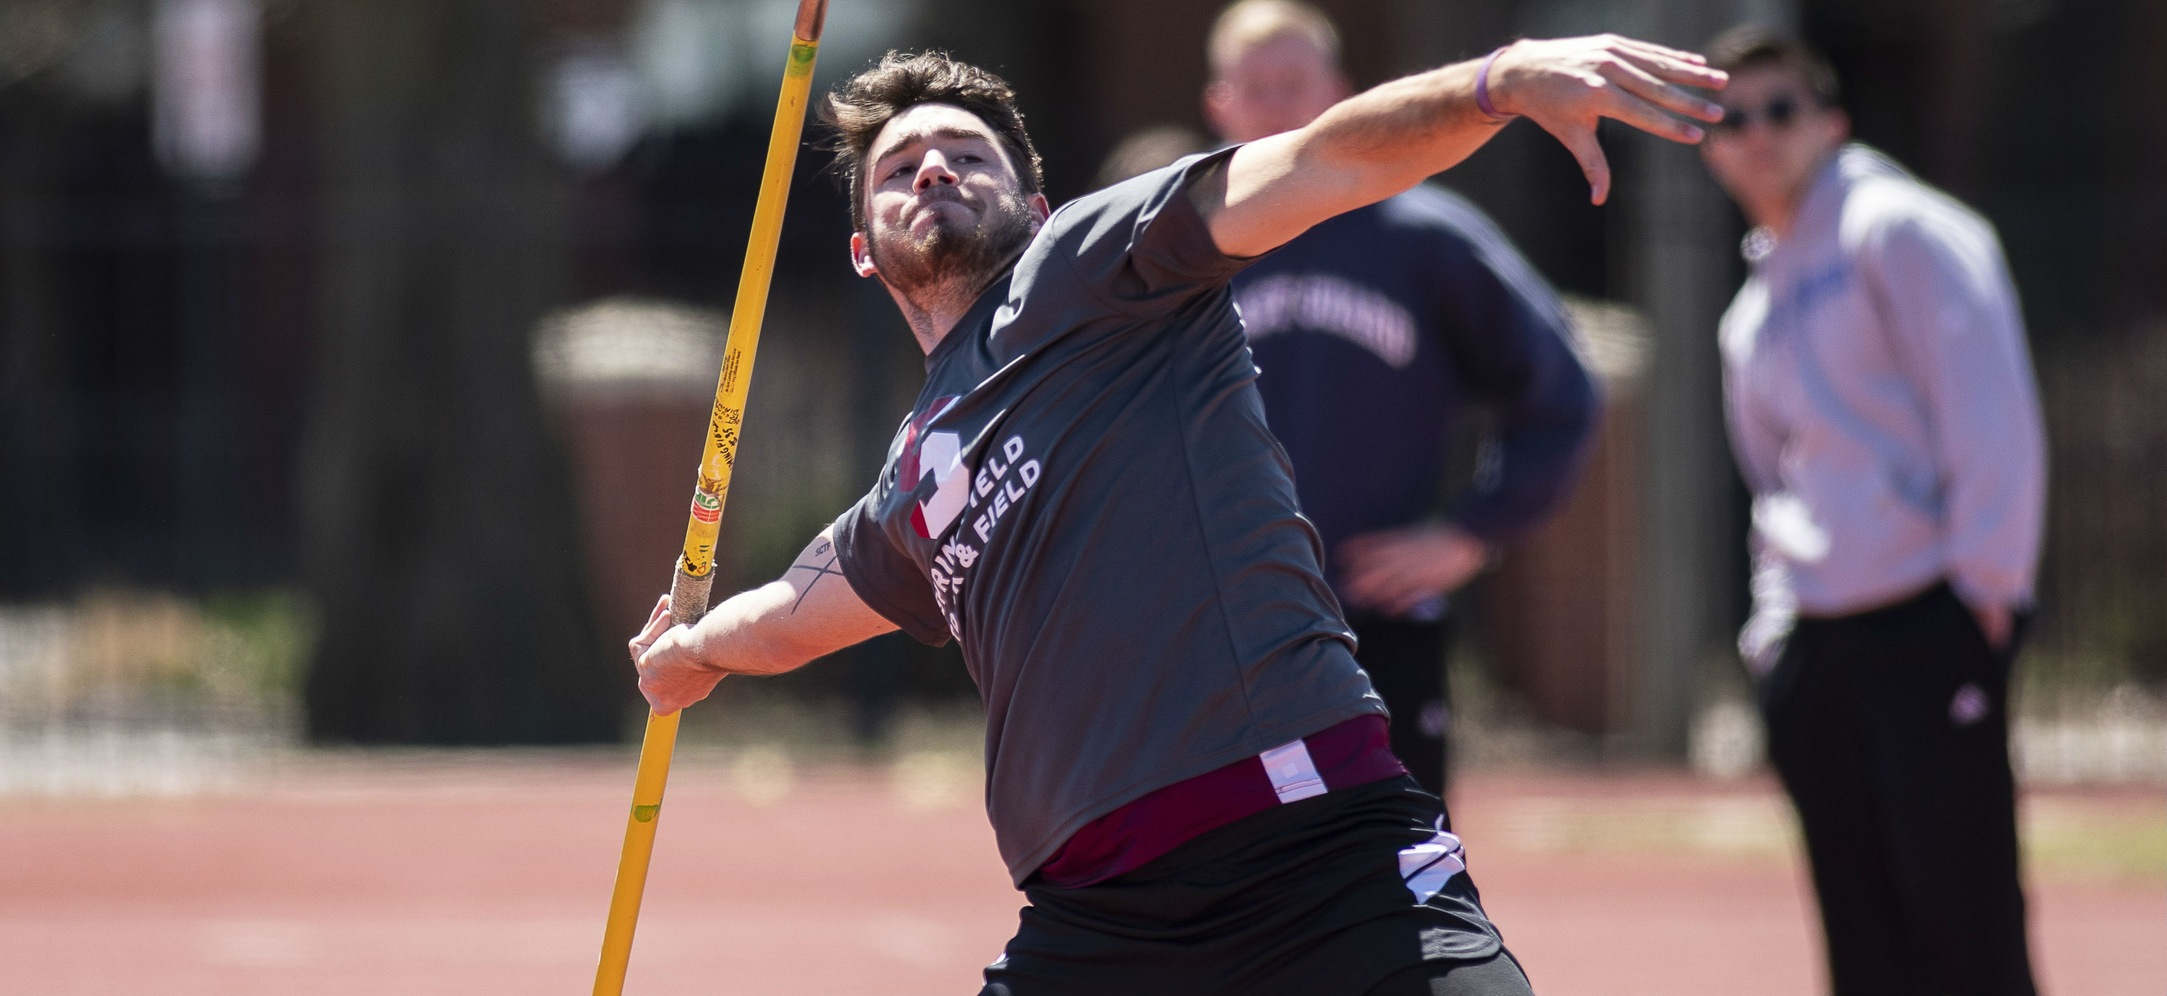 DeVaux Competes in the Javelin at MIT Final Qualifying Meet